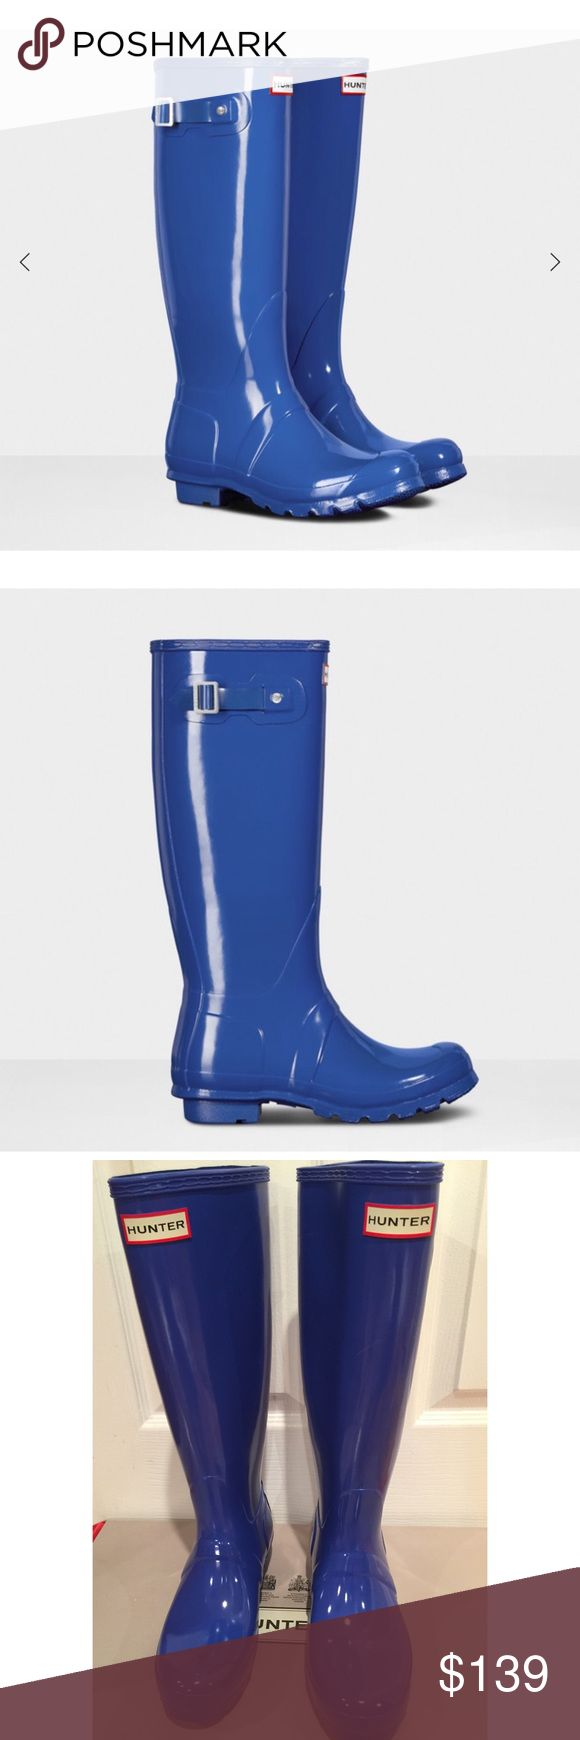 HUNTER GLOSSY COBALT BLUE RAIN BOOTS💗 BRAND NEW W/ BOX GORGEOUS COBALT BLUE. I OWN SEVERAL PAIRS and in my opinion the RAIN BOOTS RUN LARGE. I am normally a SZ 7 in or 37 and sometimes a 37.5 in Designer. These are a US 6 UK 37 or EU 37 and all my other HUNTERS I've Had to Downsize to this SZ. This color is stunning!!*️⃣PRICE is FIRM and Heavy to Ship with Box. . Hunter Boots Shoes Winter & Rain Boots